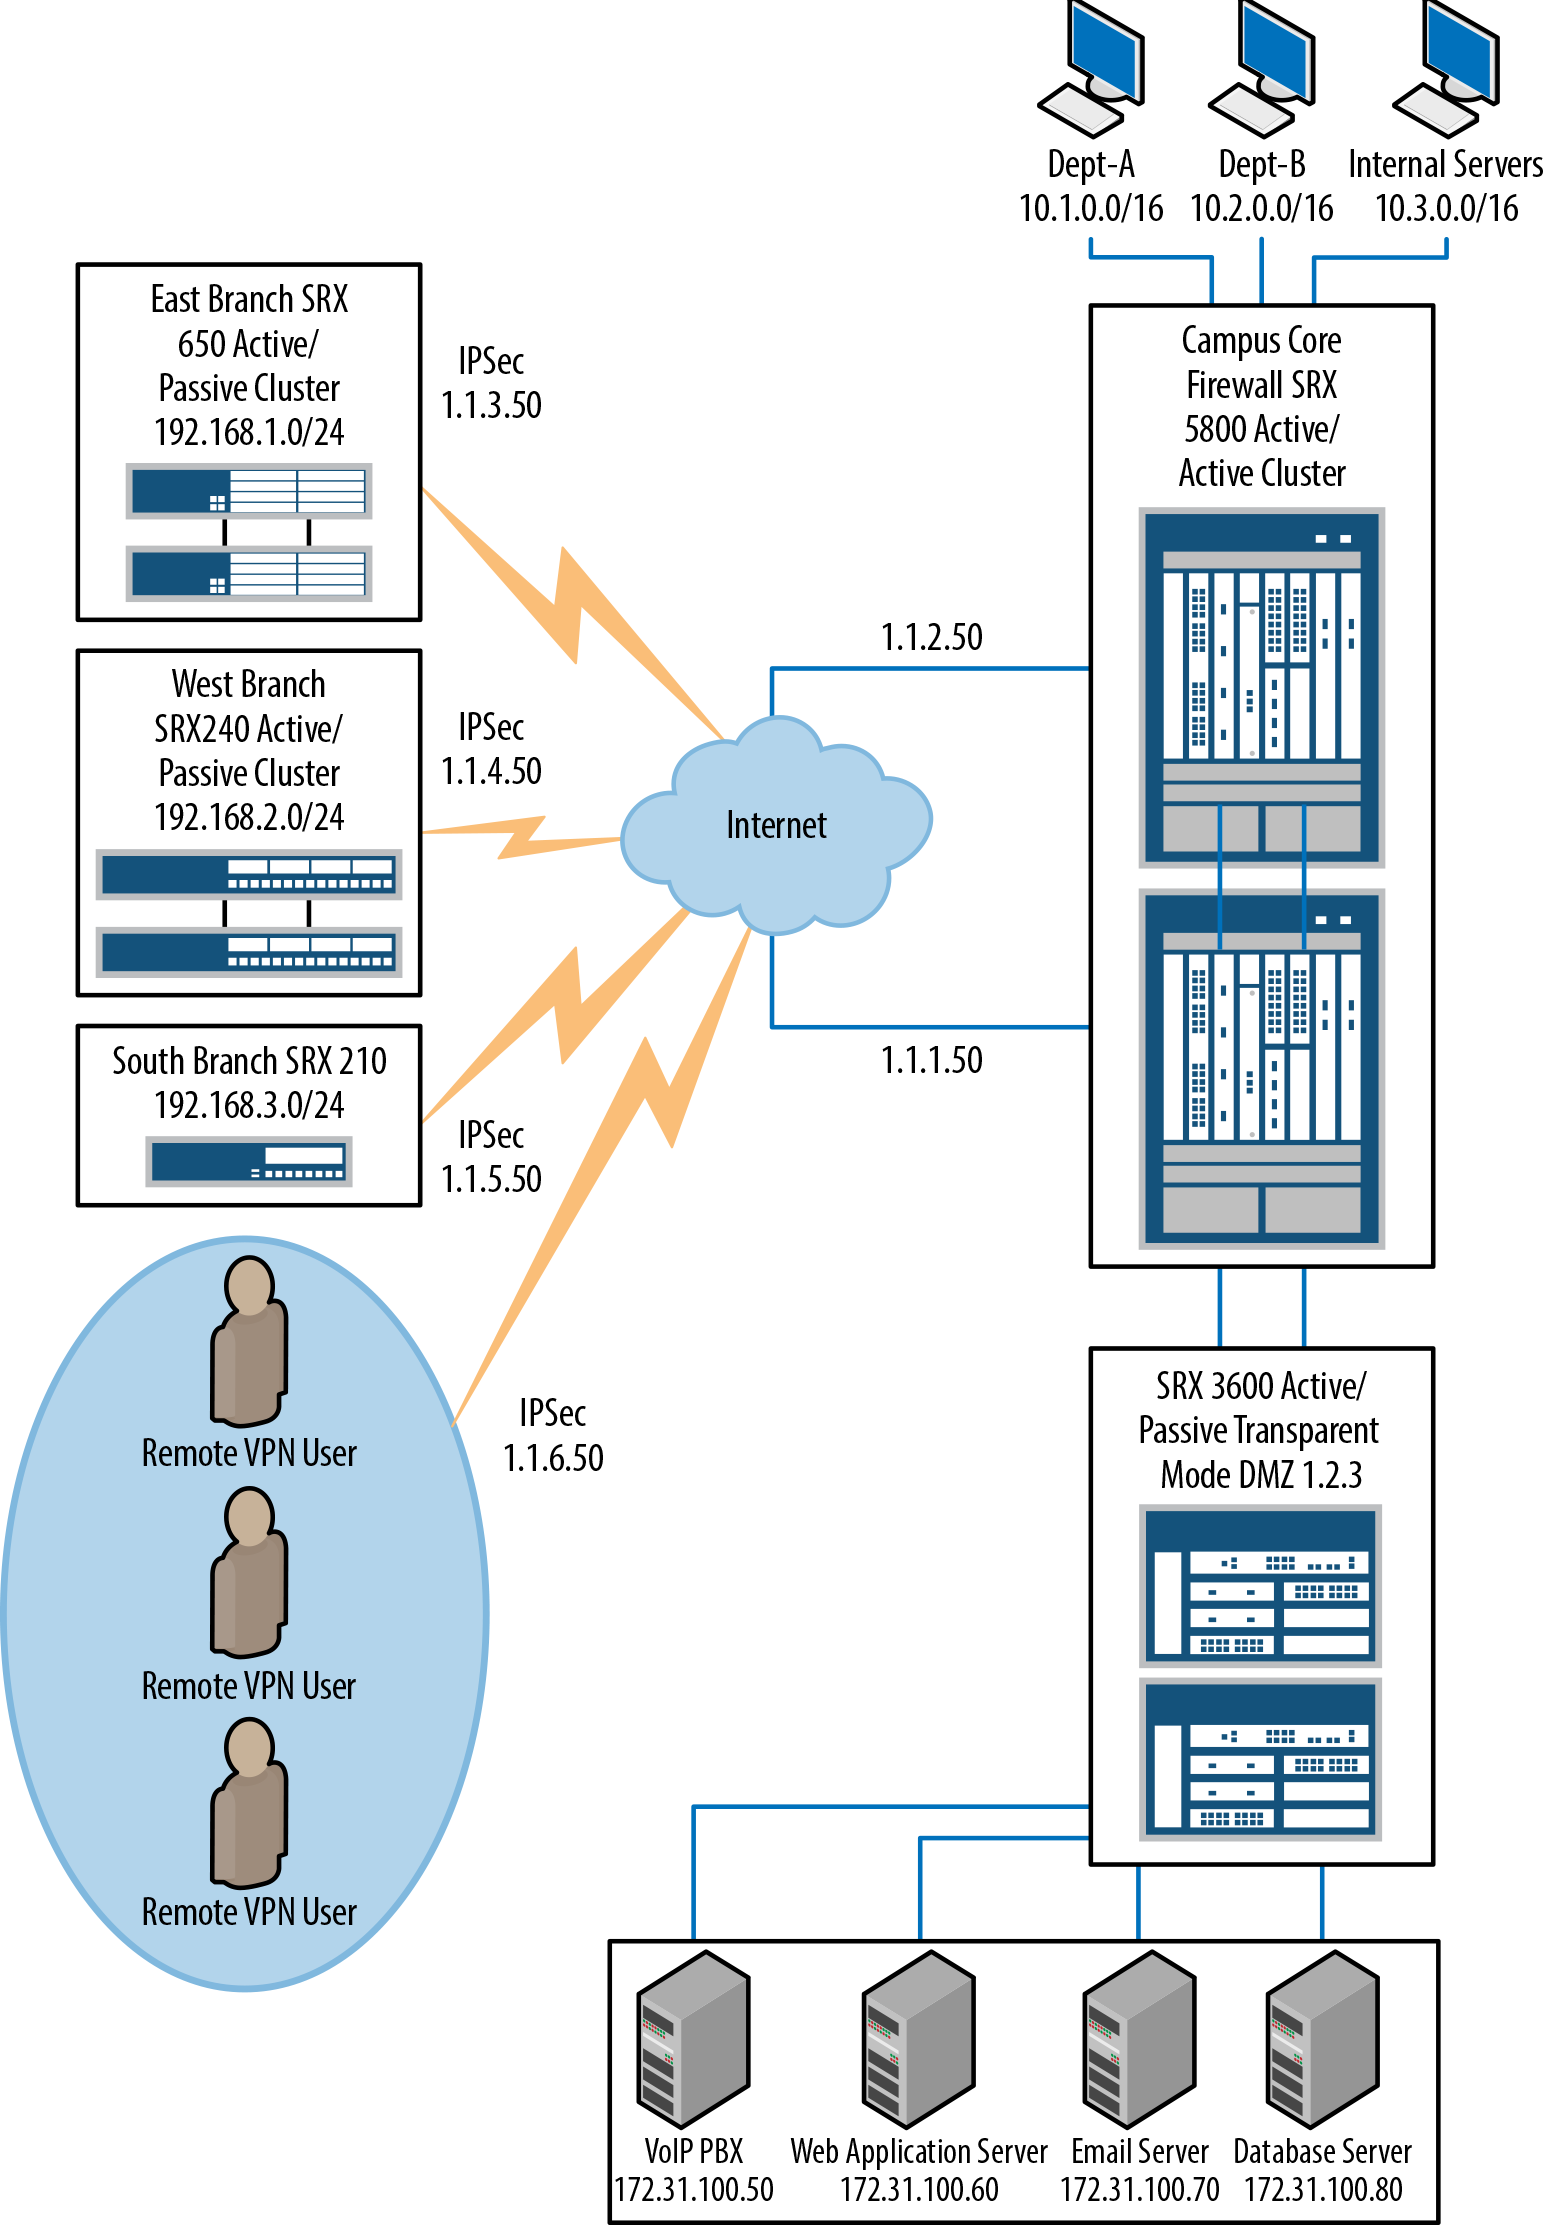 Reference network